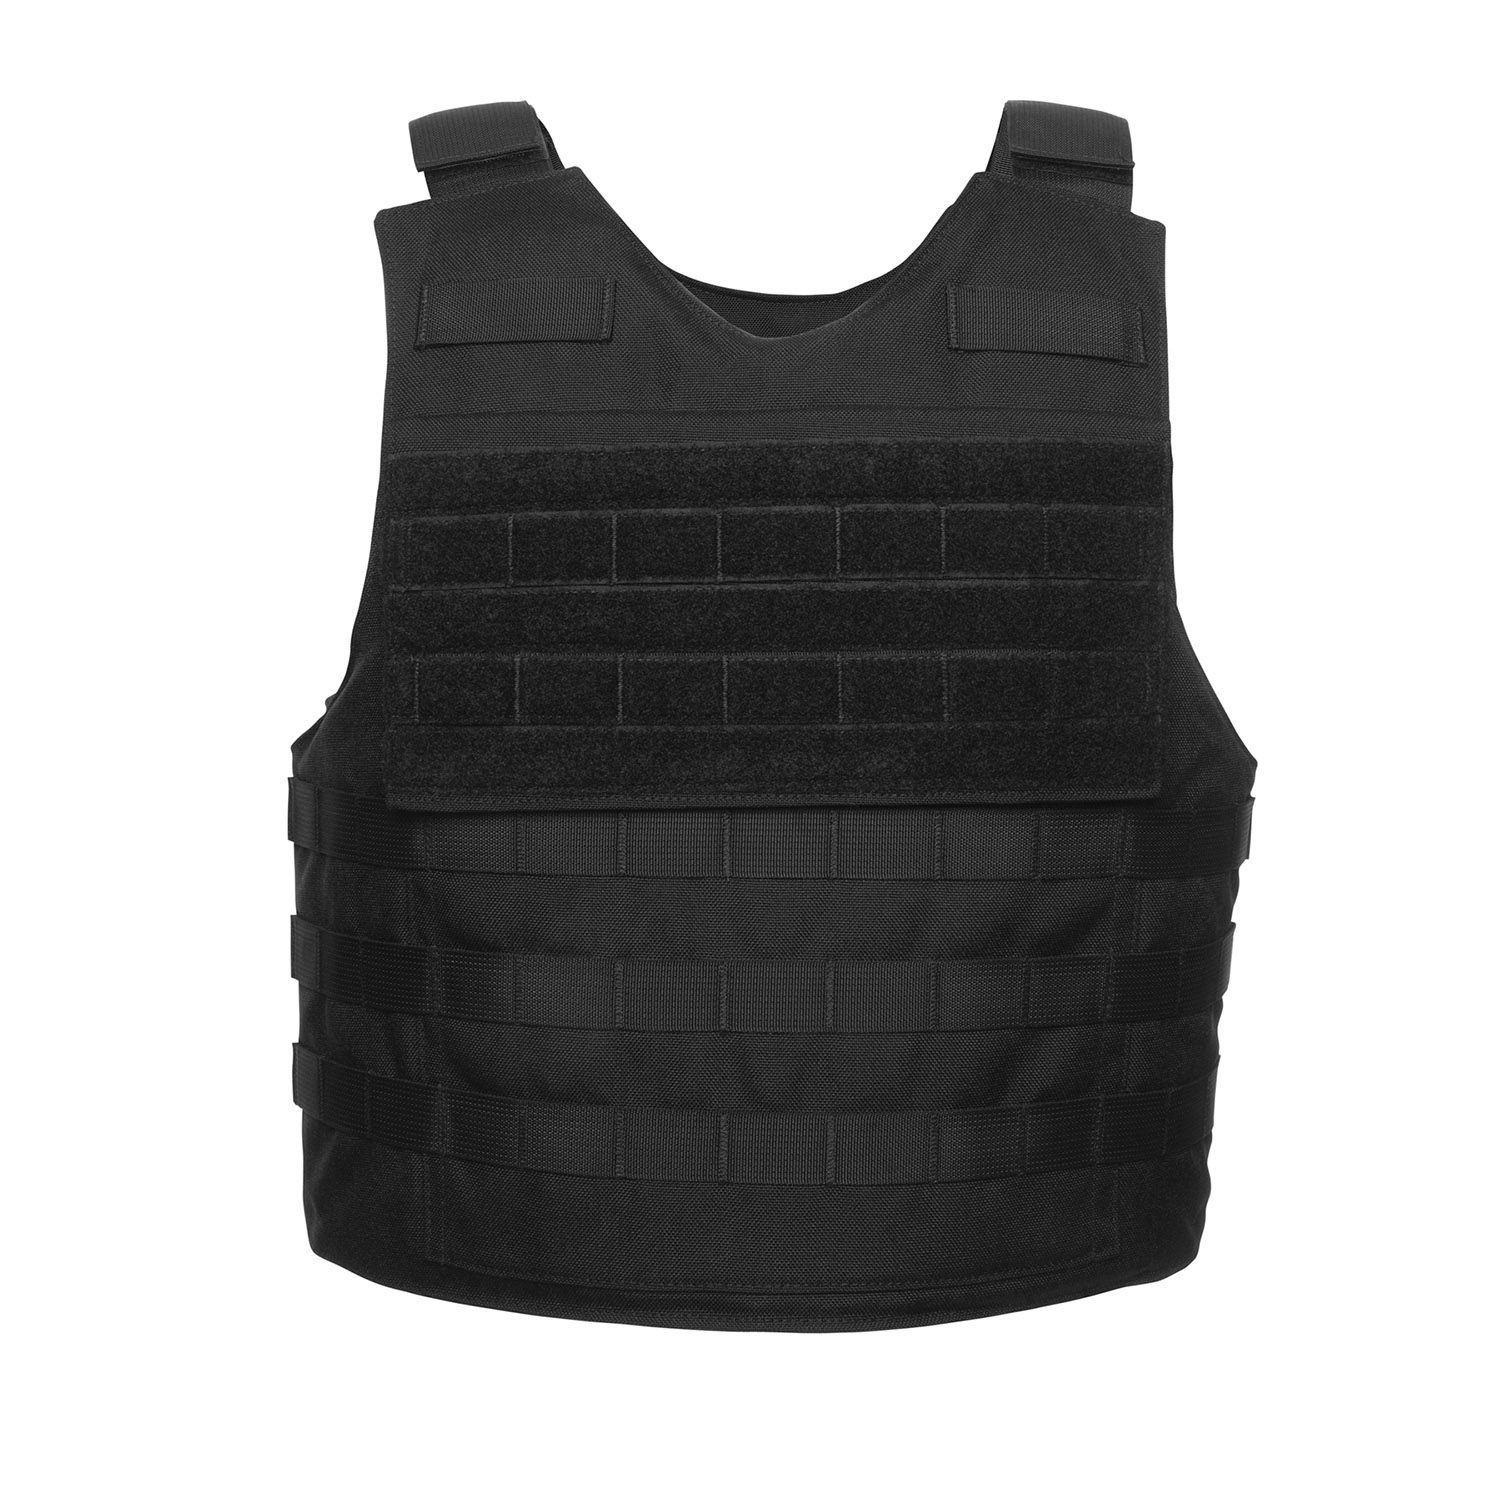 GH Armor Tactical Response Carrier